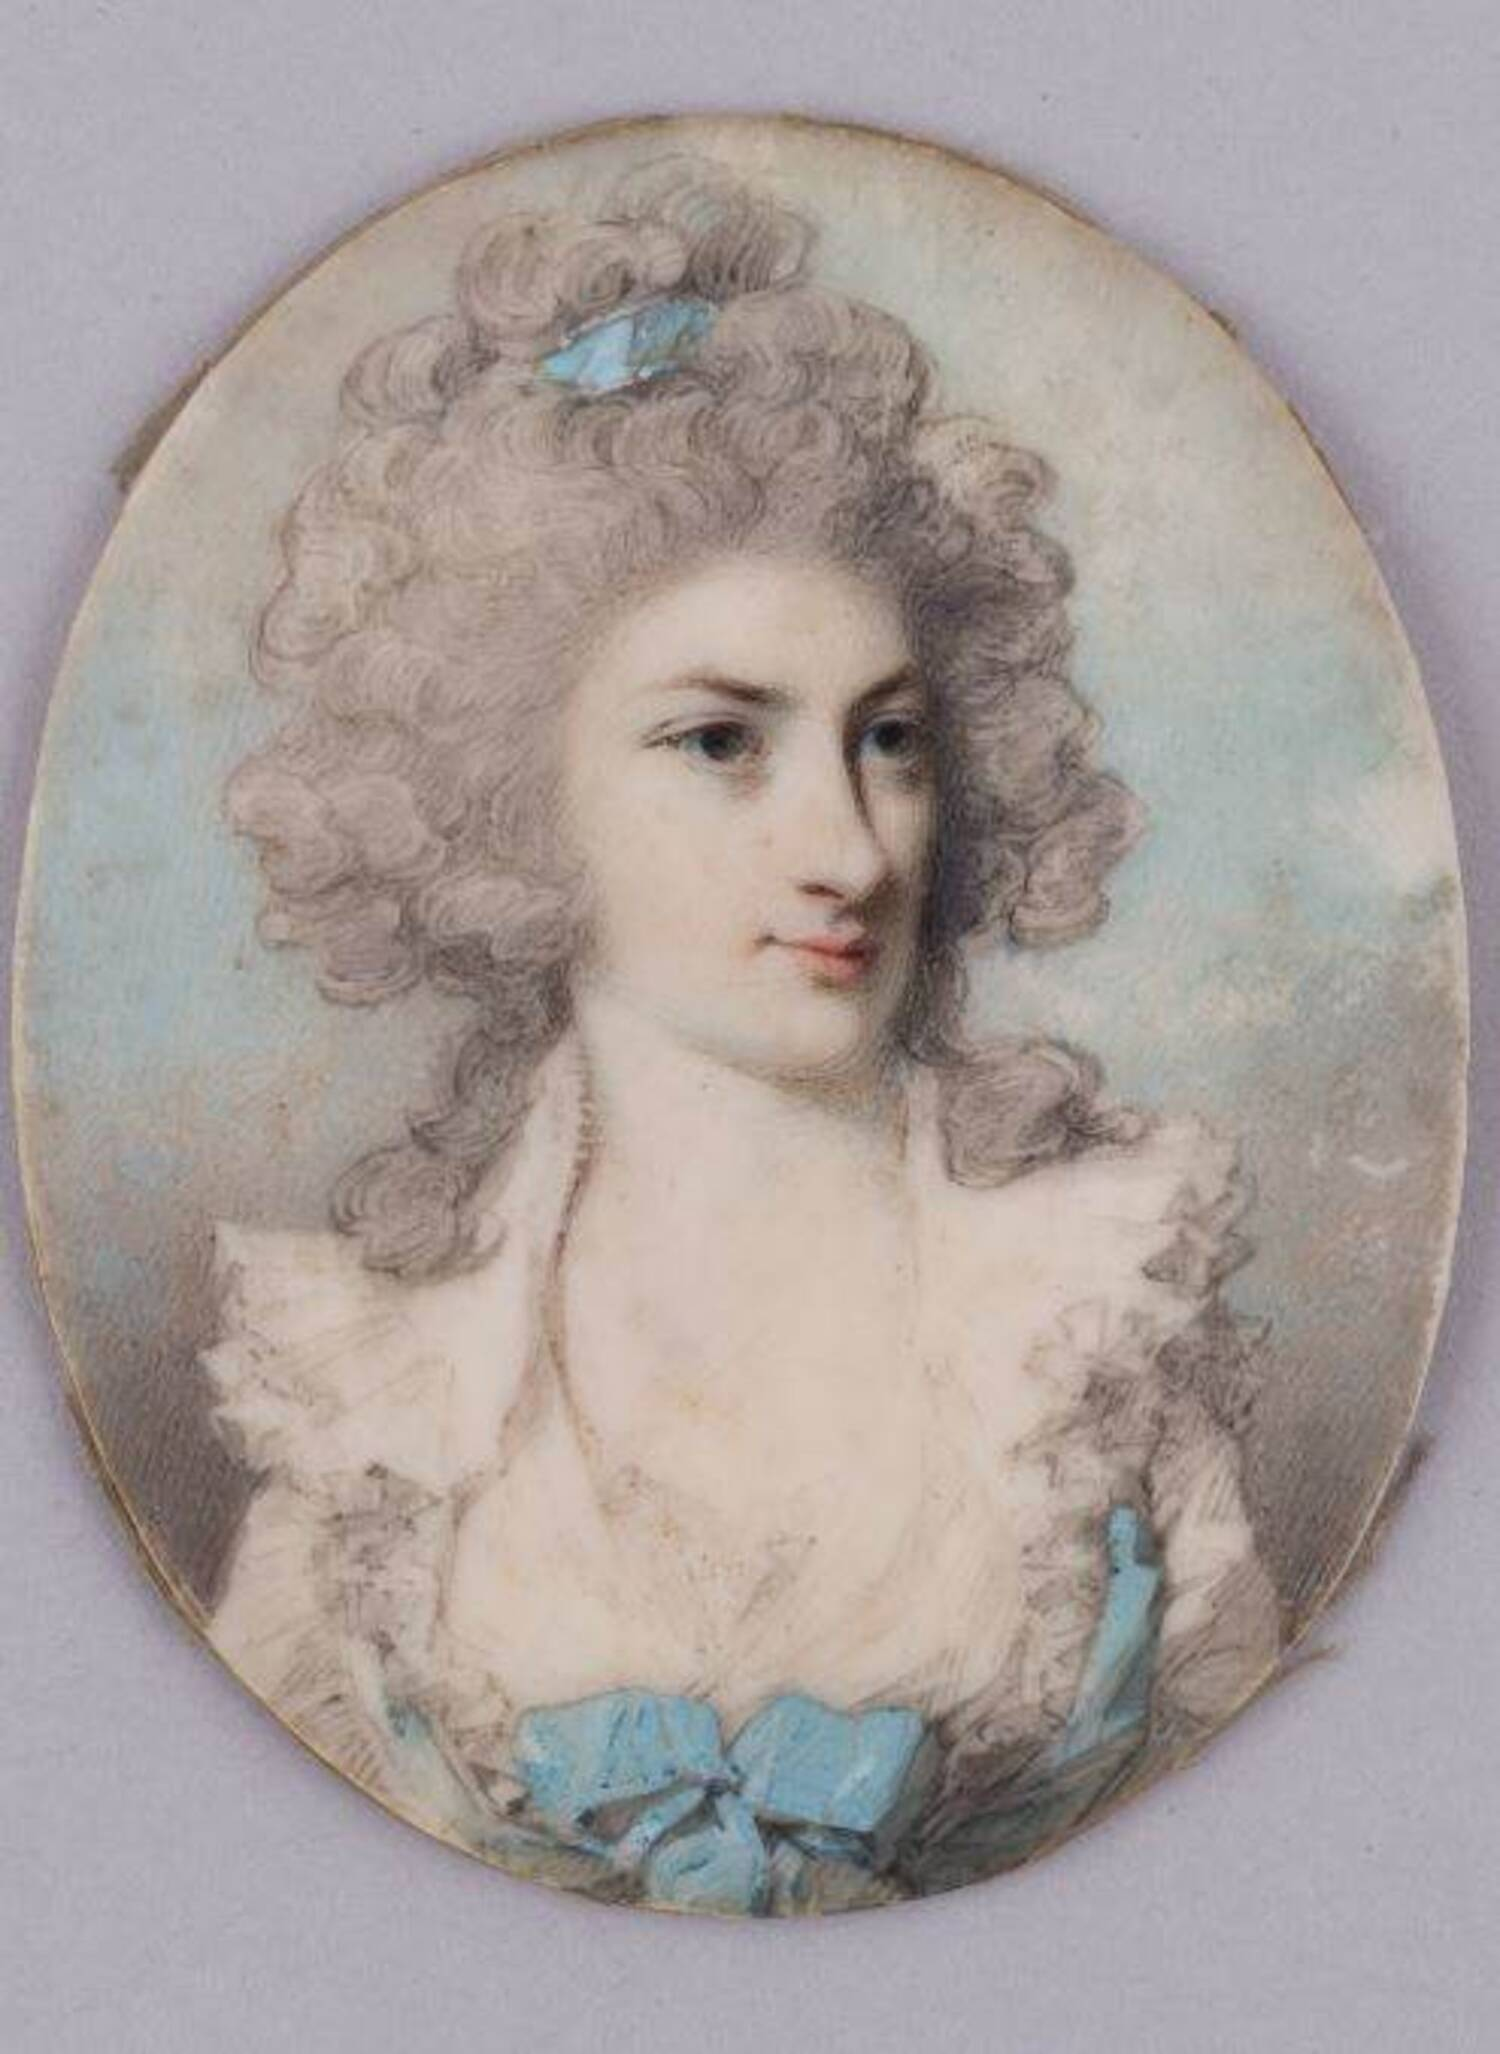 An oval-shaped portrait miniature of a young woman. She has powdered white hair, which is piled on top of her head and fastened with a blue ribbon.